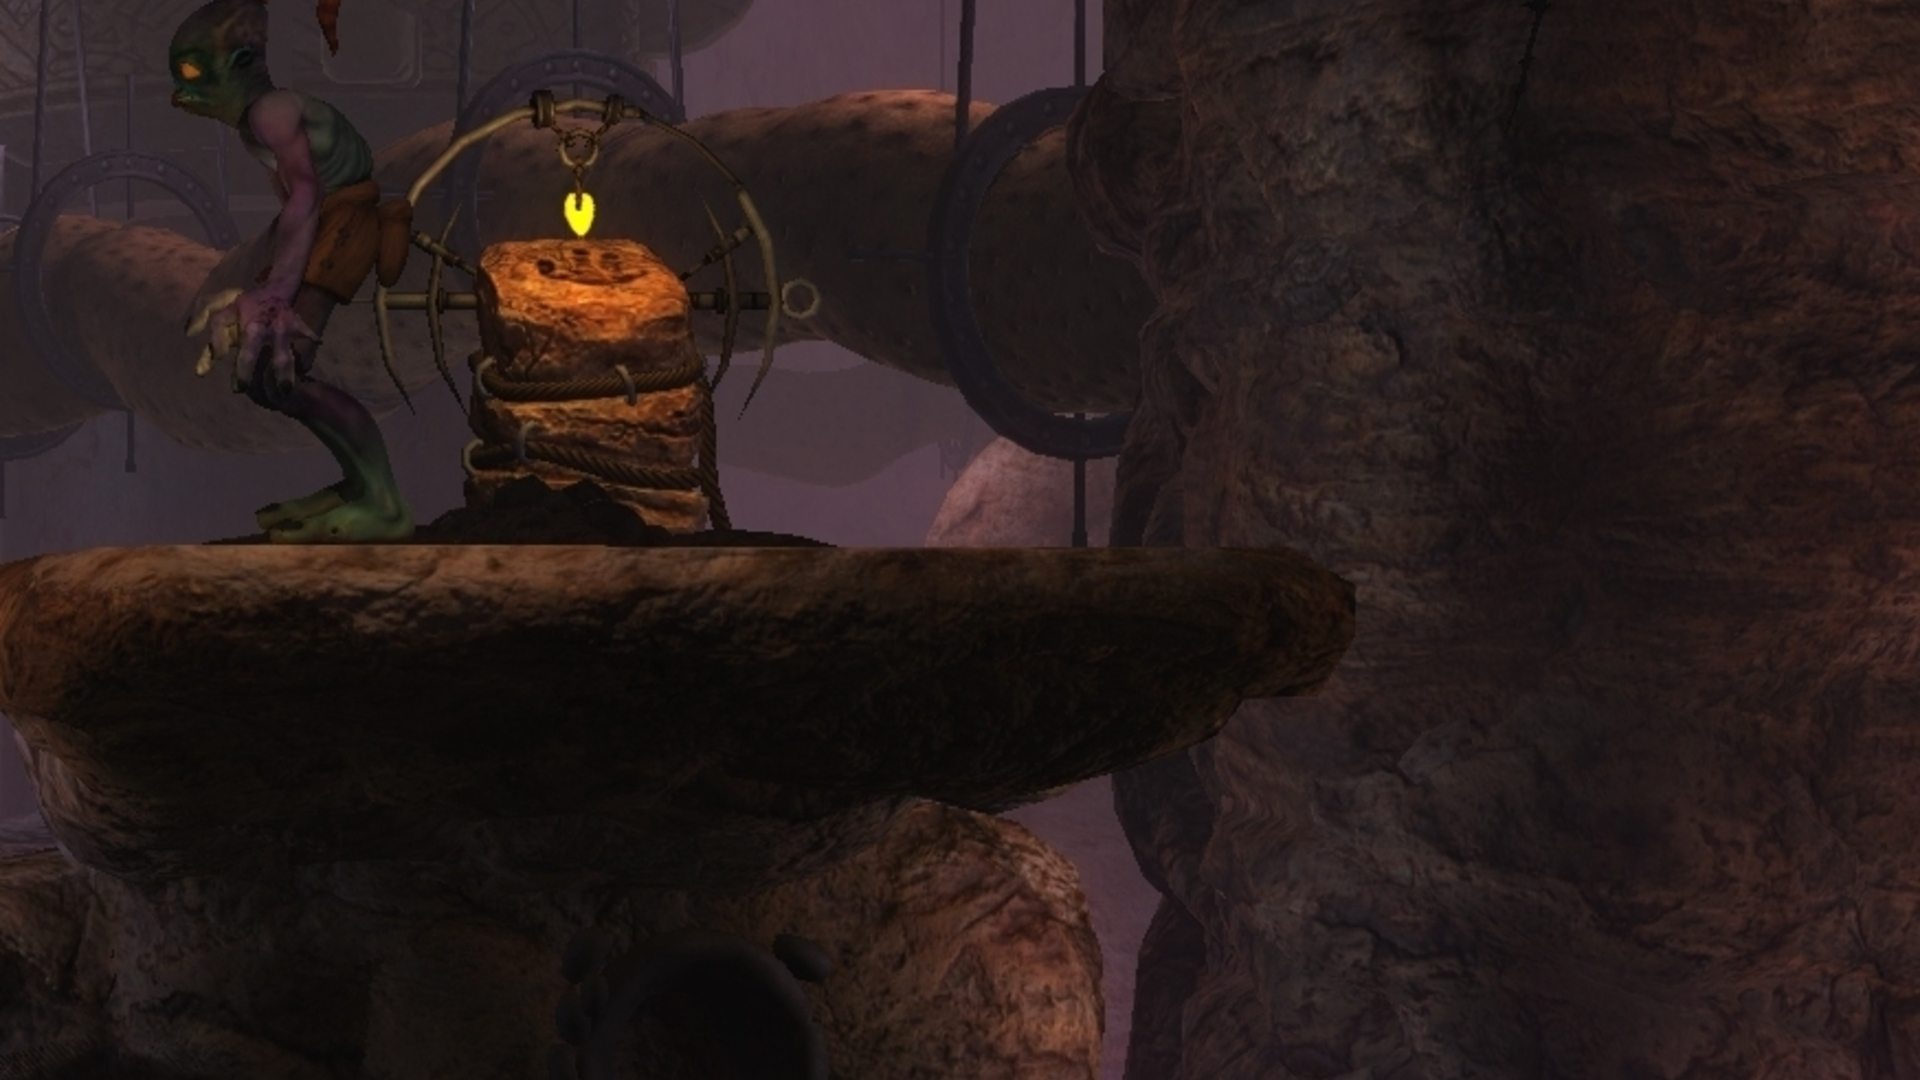 Right now, Oddworld: New 'n' Tasty isn't coming to Xbox One or Xbox 360